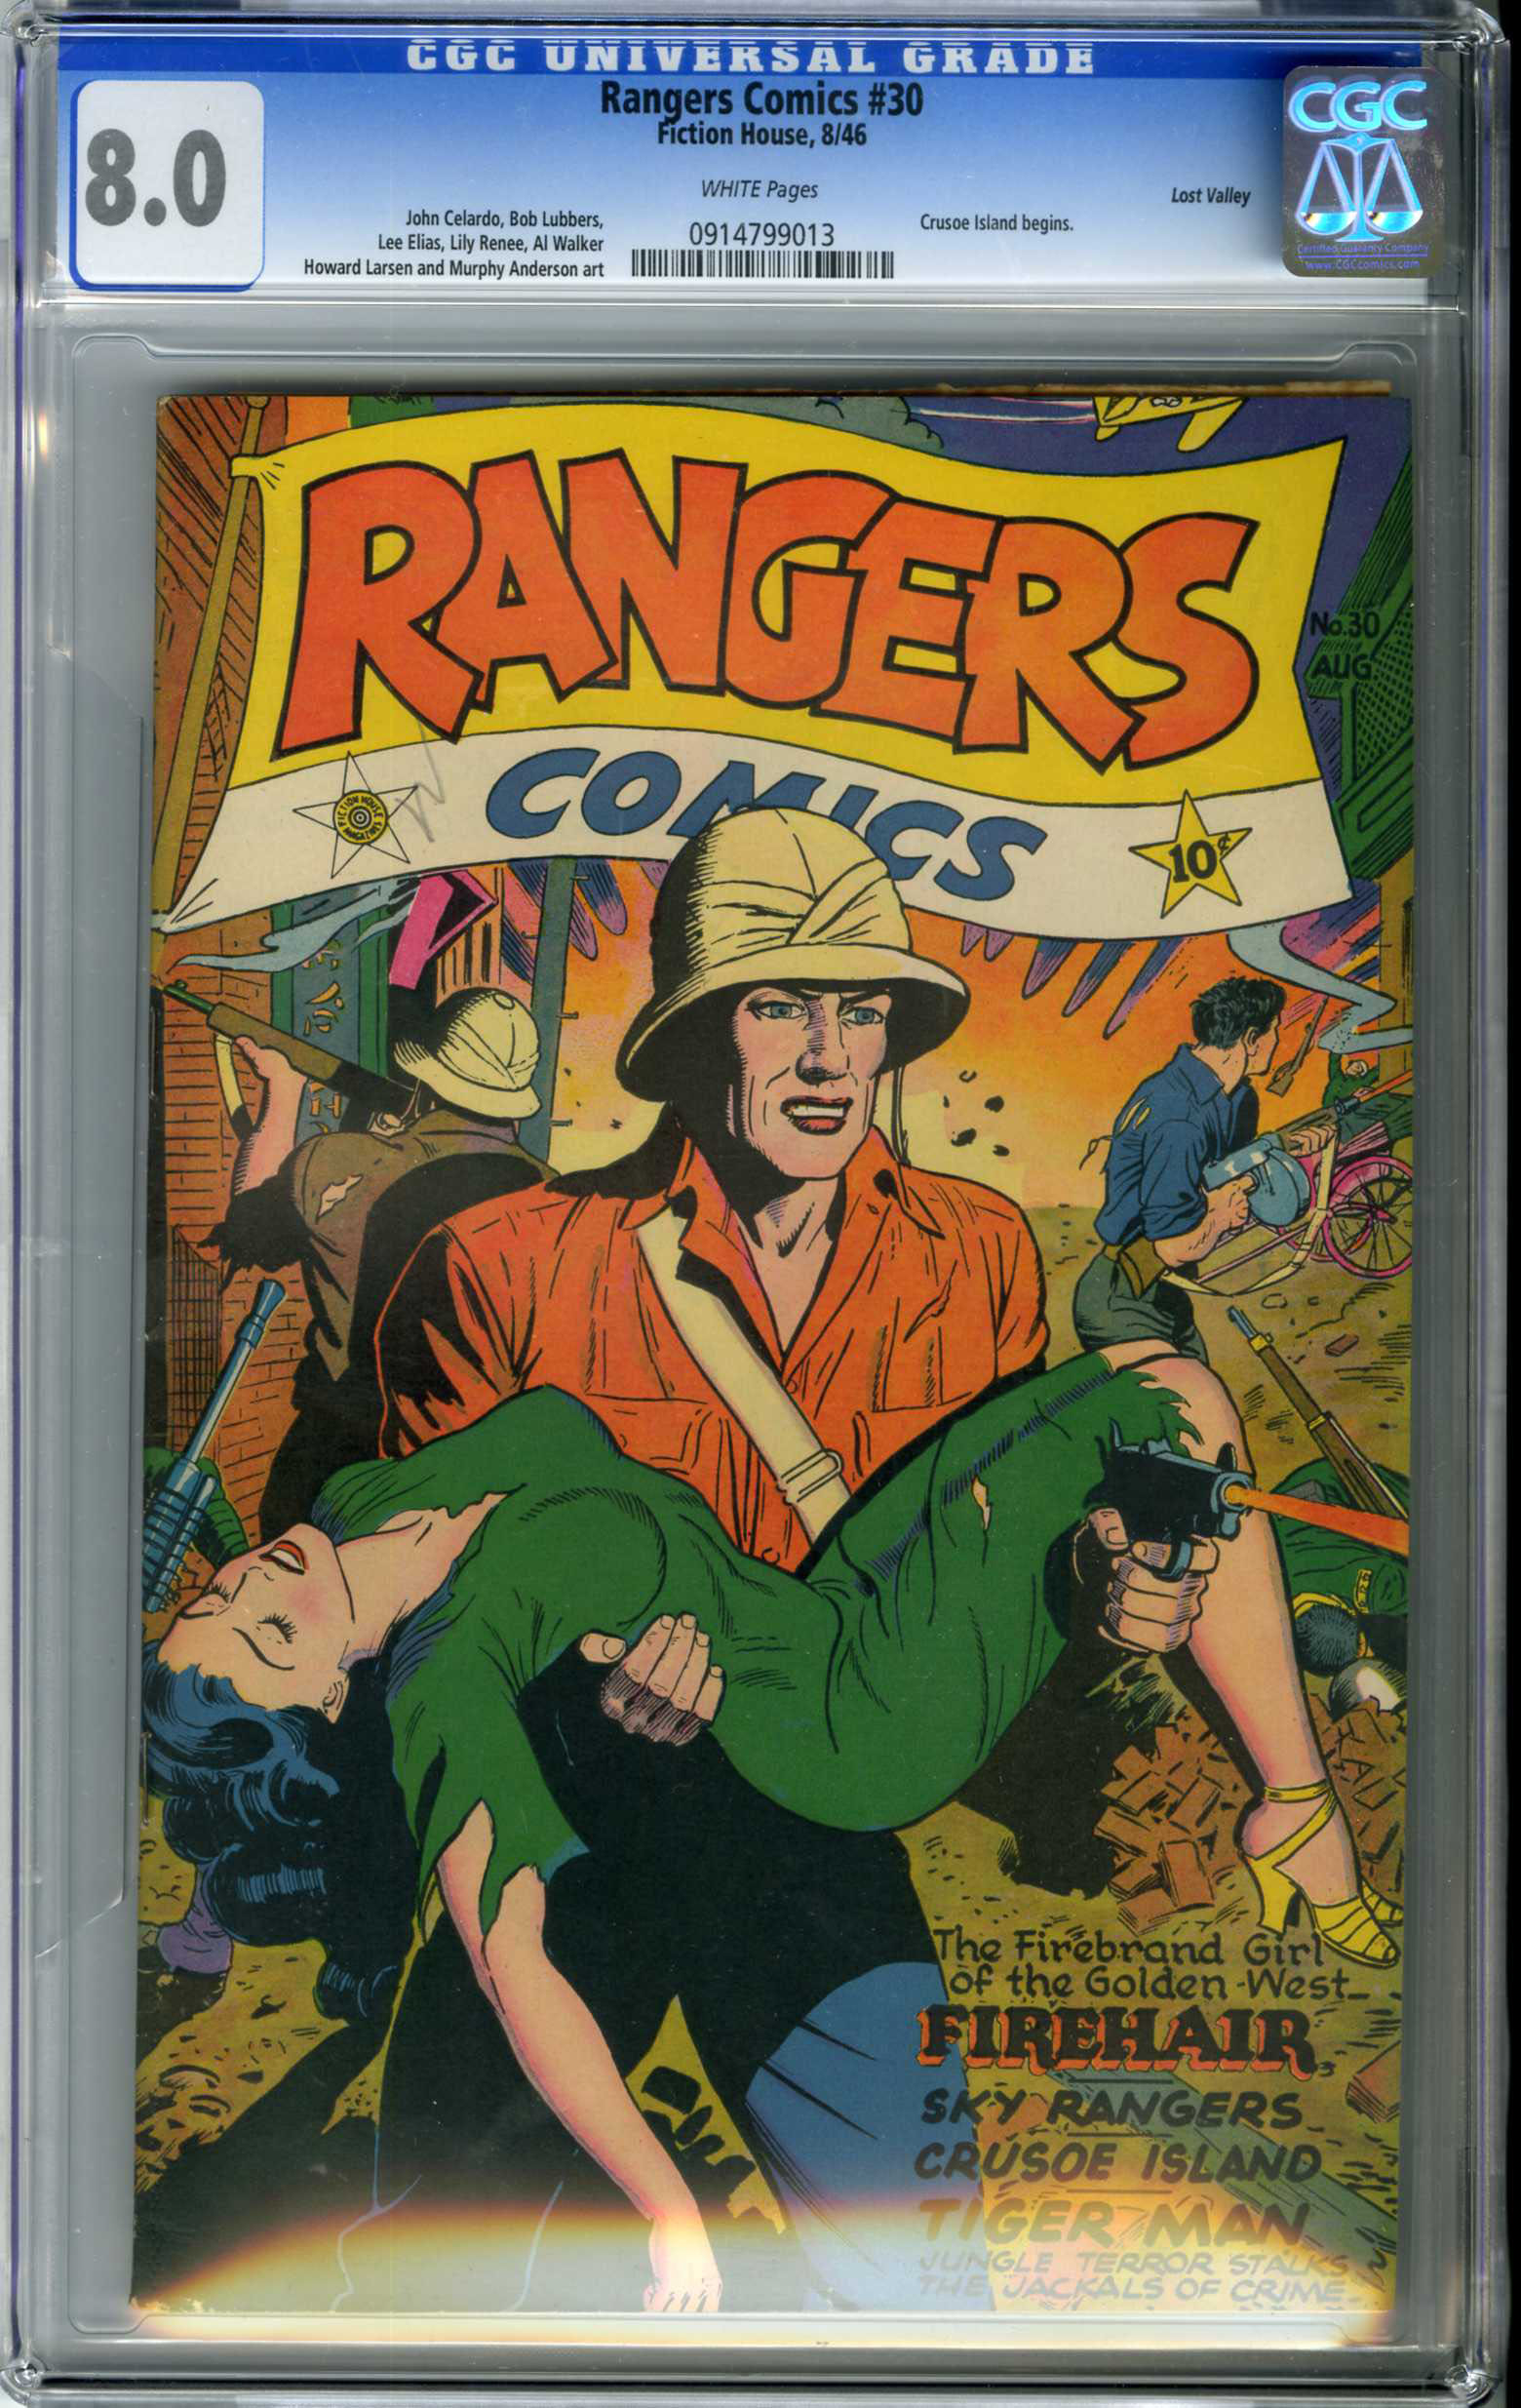 RANGERS COMICS #30 (1946) CGC VF 8.0 WHITE Pages / LOST VALLEY Pedigree FIREHAIR